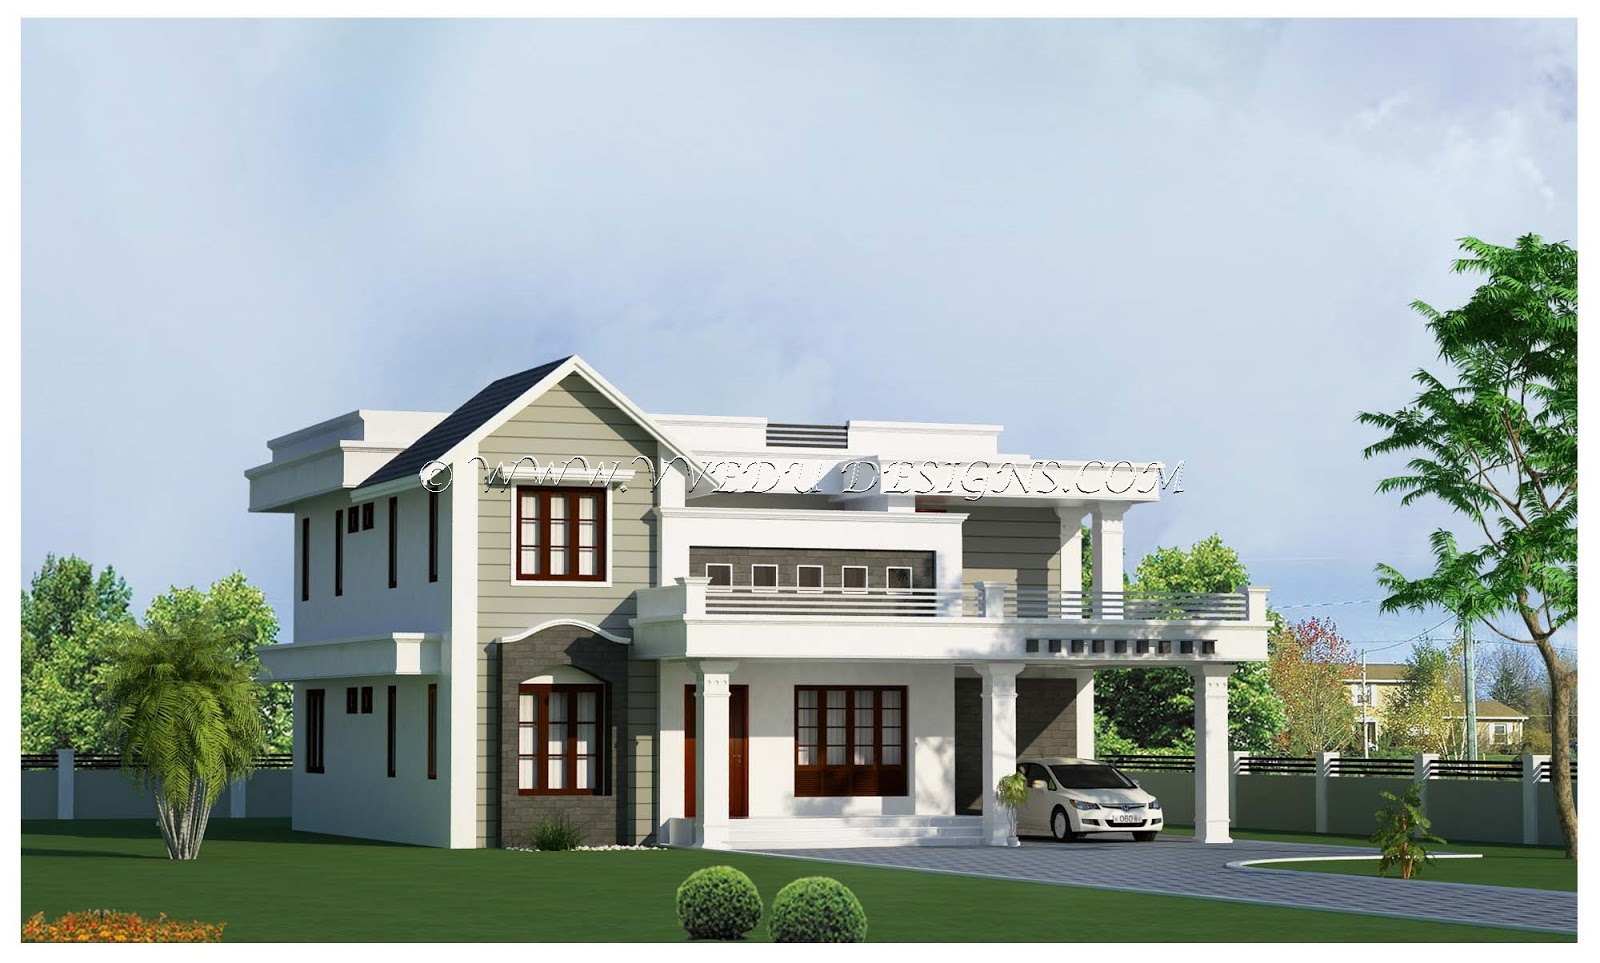 Veedu designs veedu designs kerala home design by navaz ak - Home design photo ...